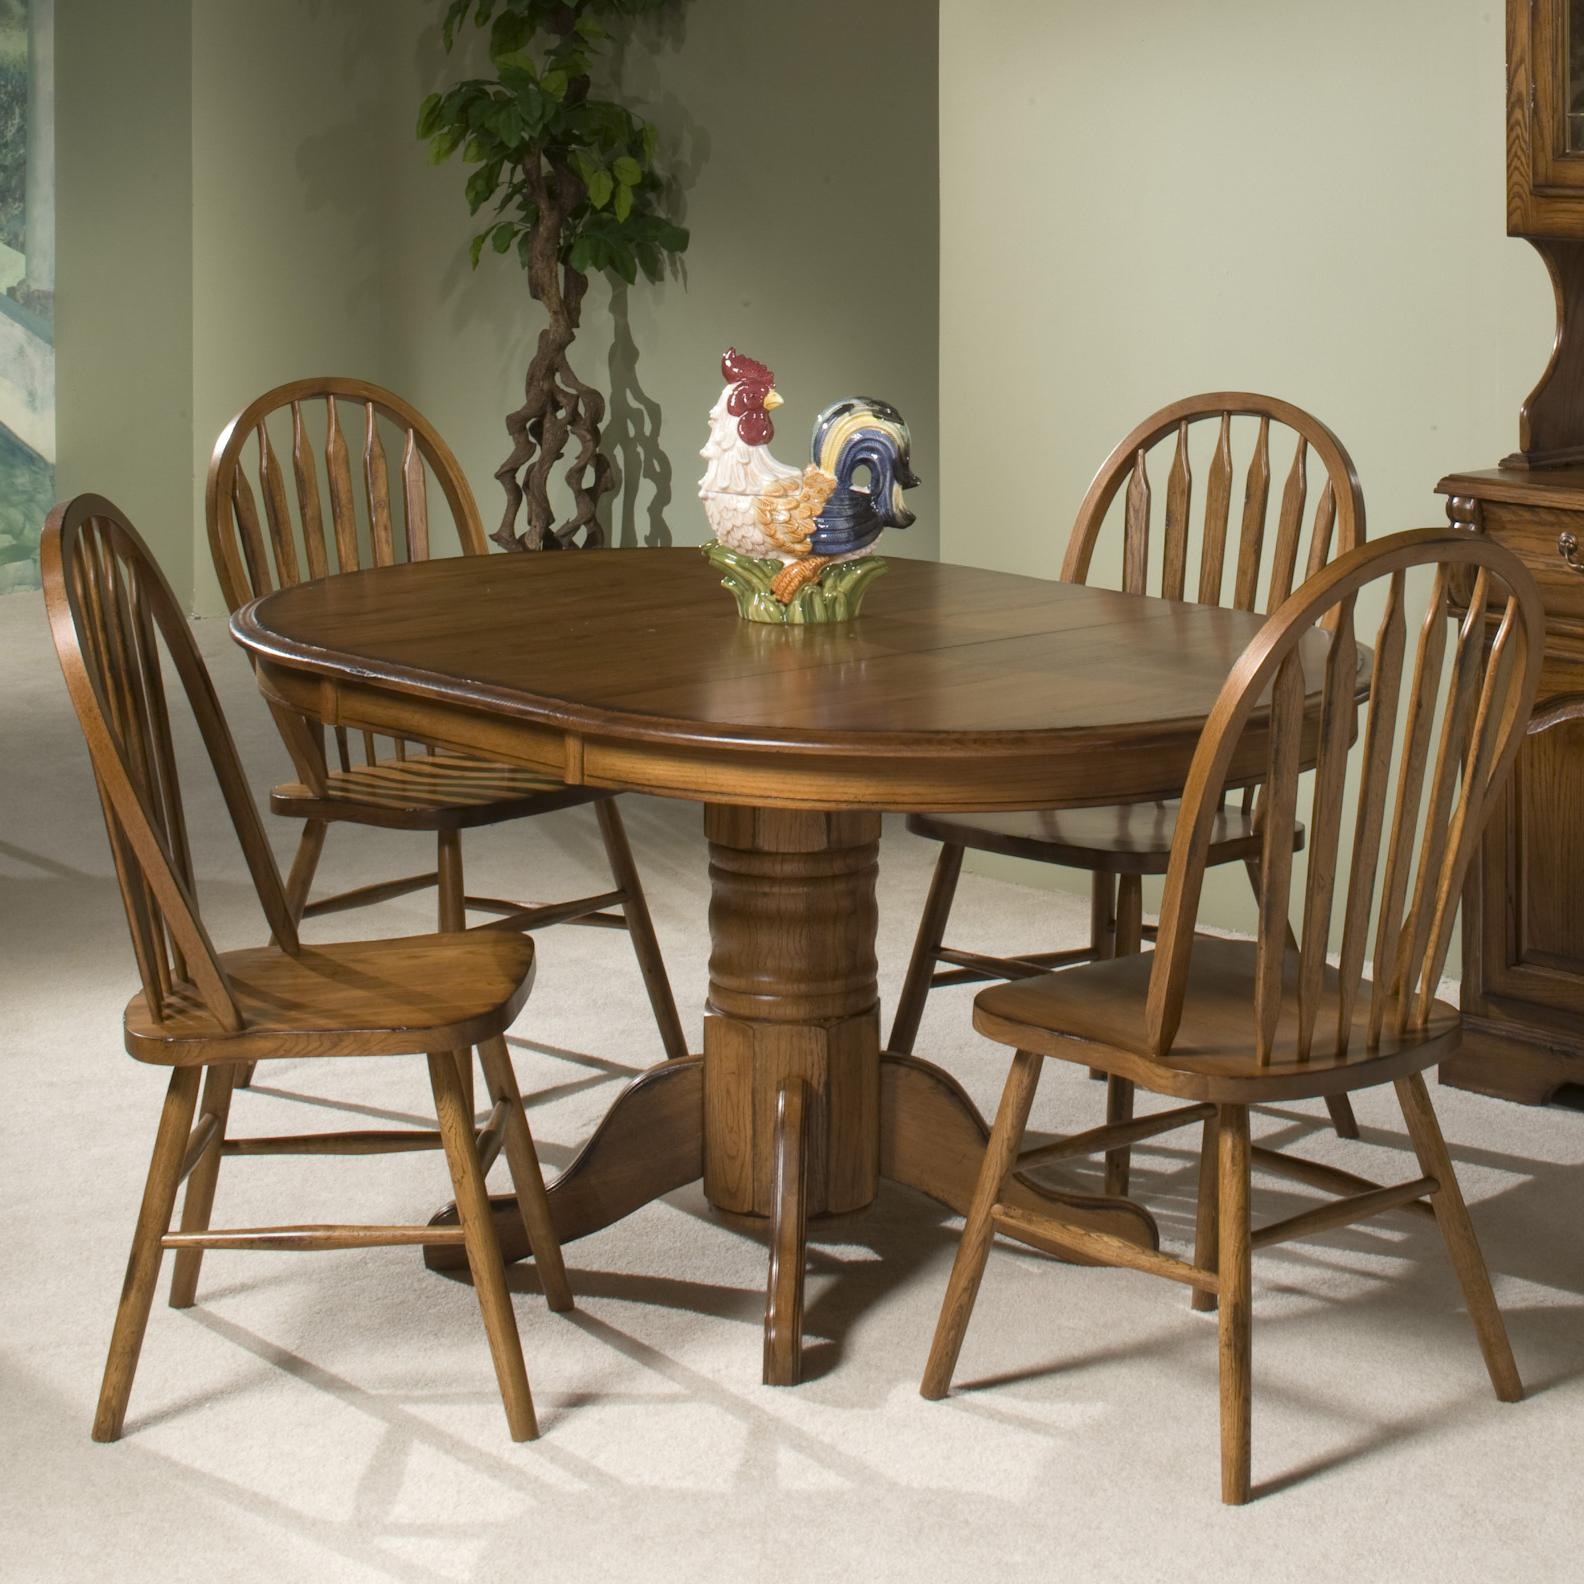 Classic Oak Five Piece Dining Set by Intercon at Rife's Home Furniture